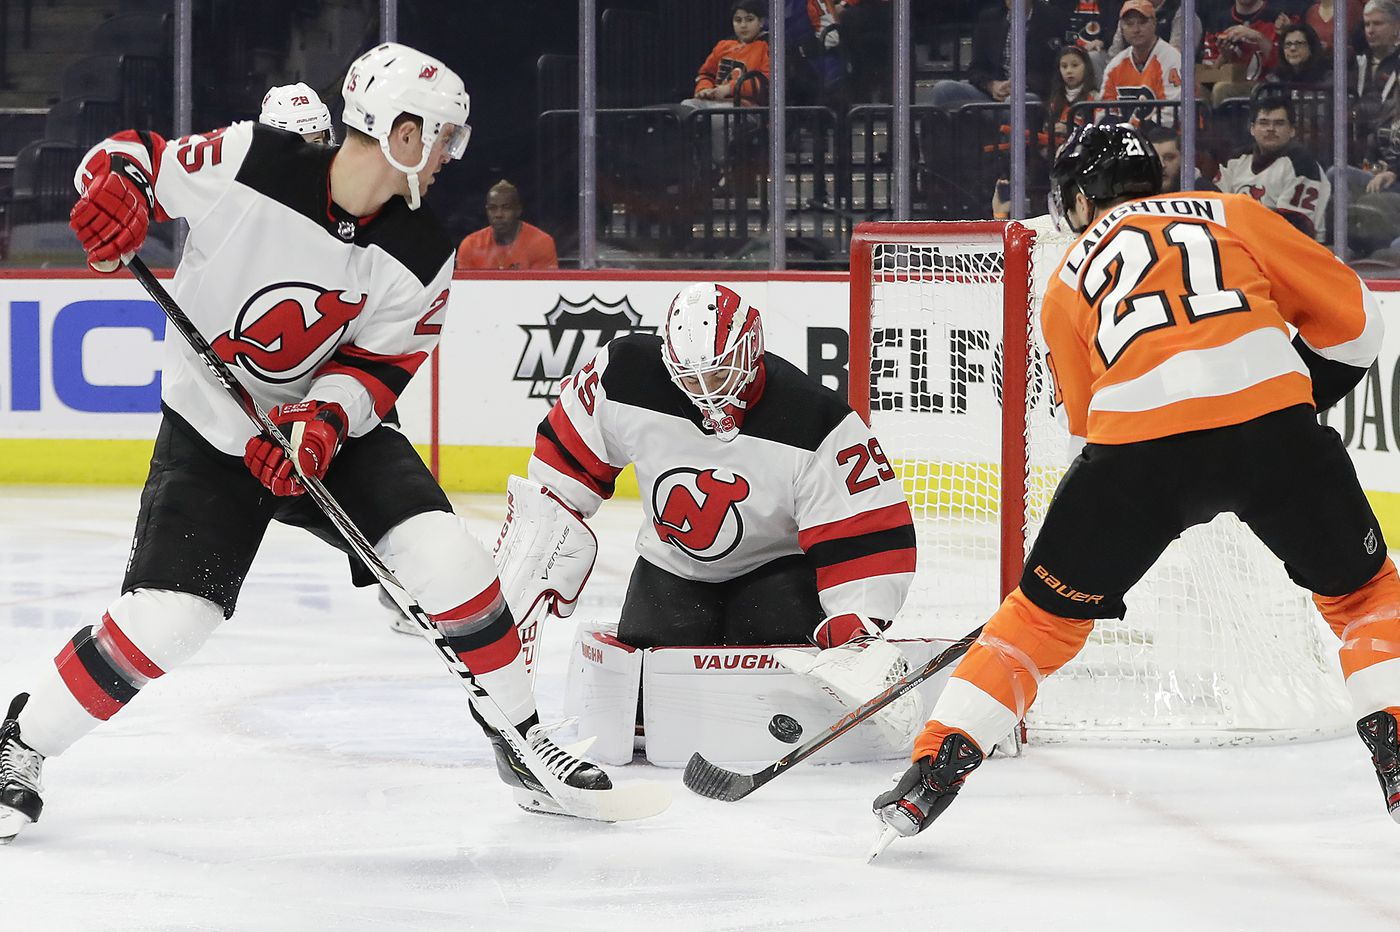 Flyers play a clunker and are manhandled by lowly New Jersey Devils, 5-0